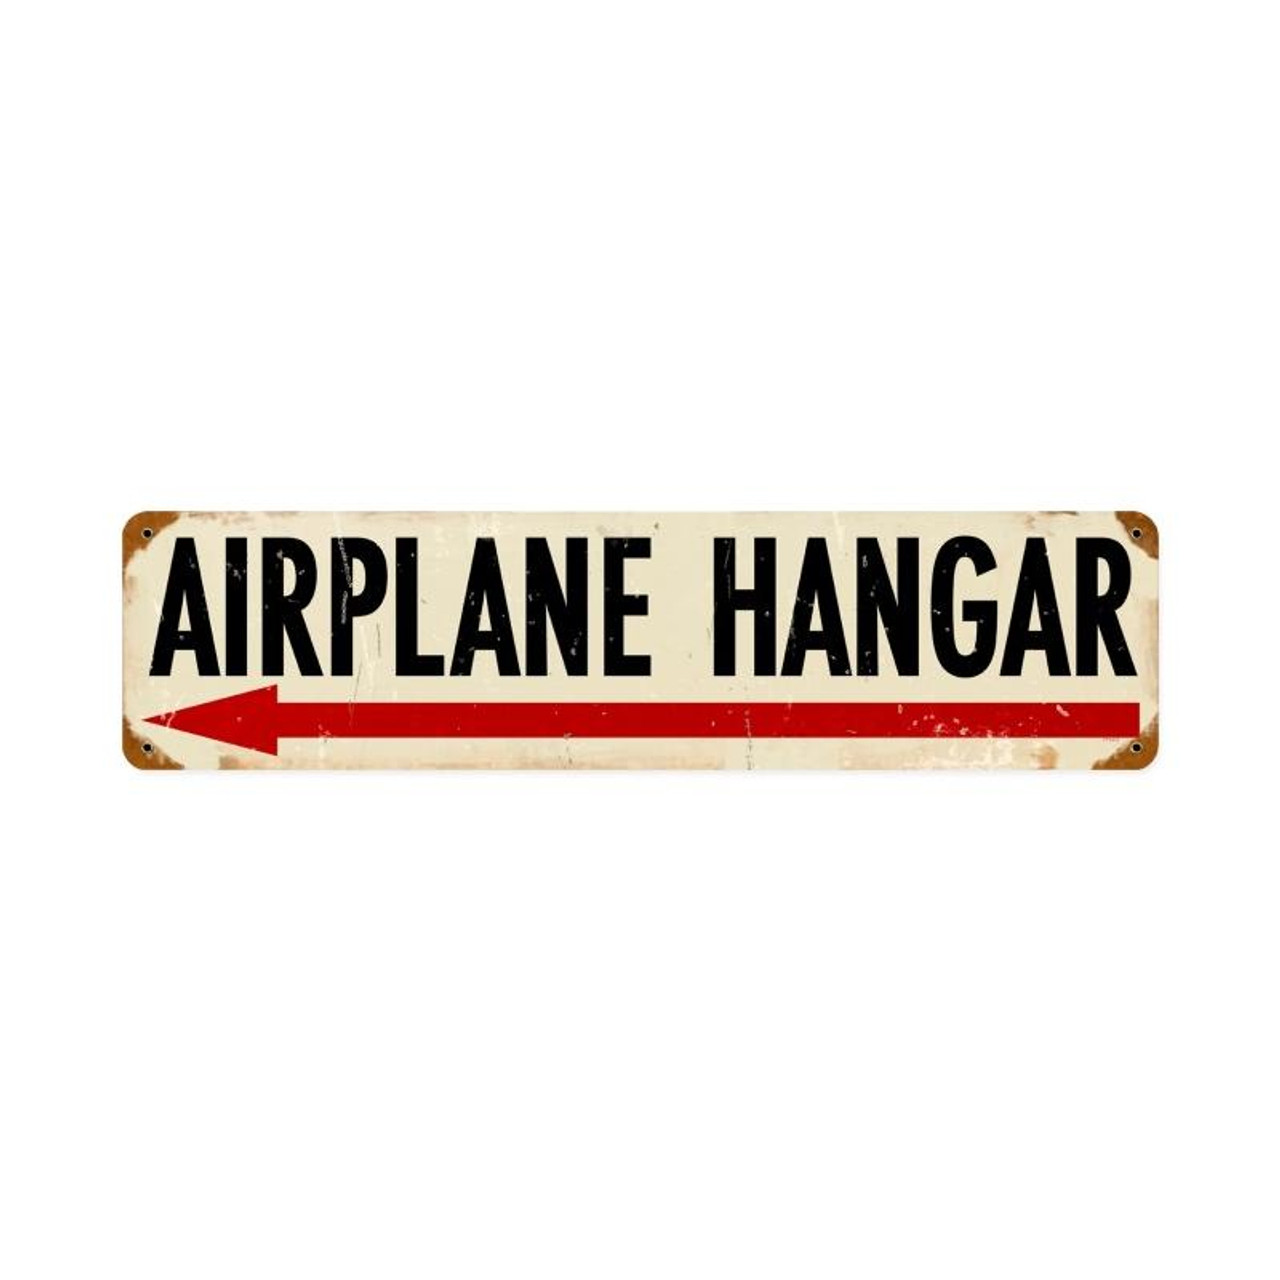 Airplane Hanger Left Metal Sign 20 x 5 Inches